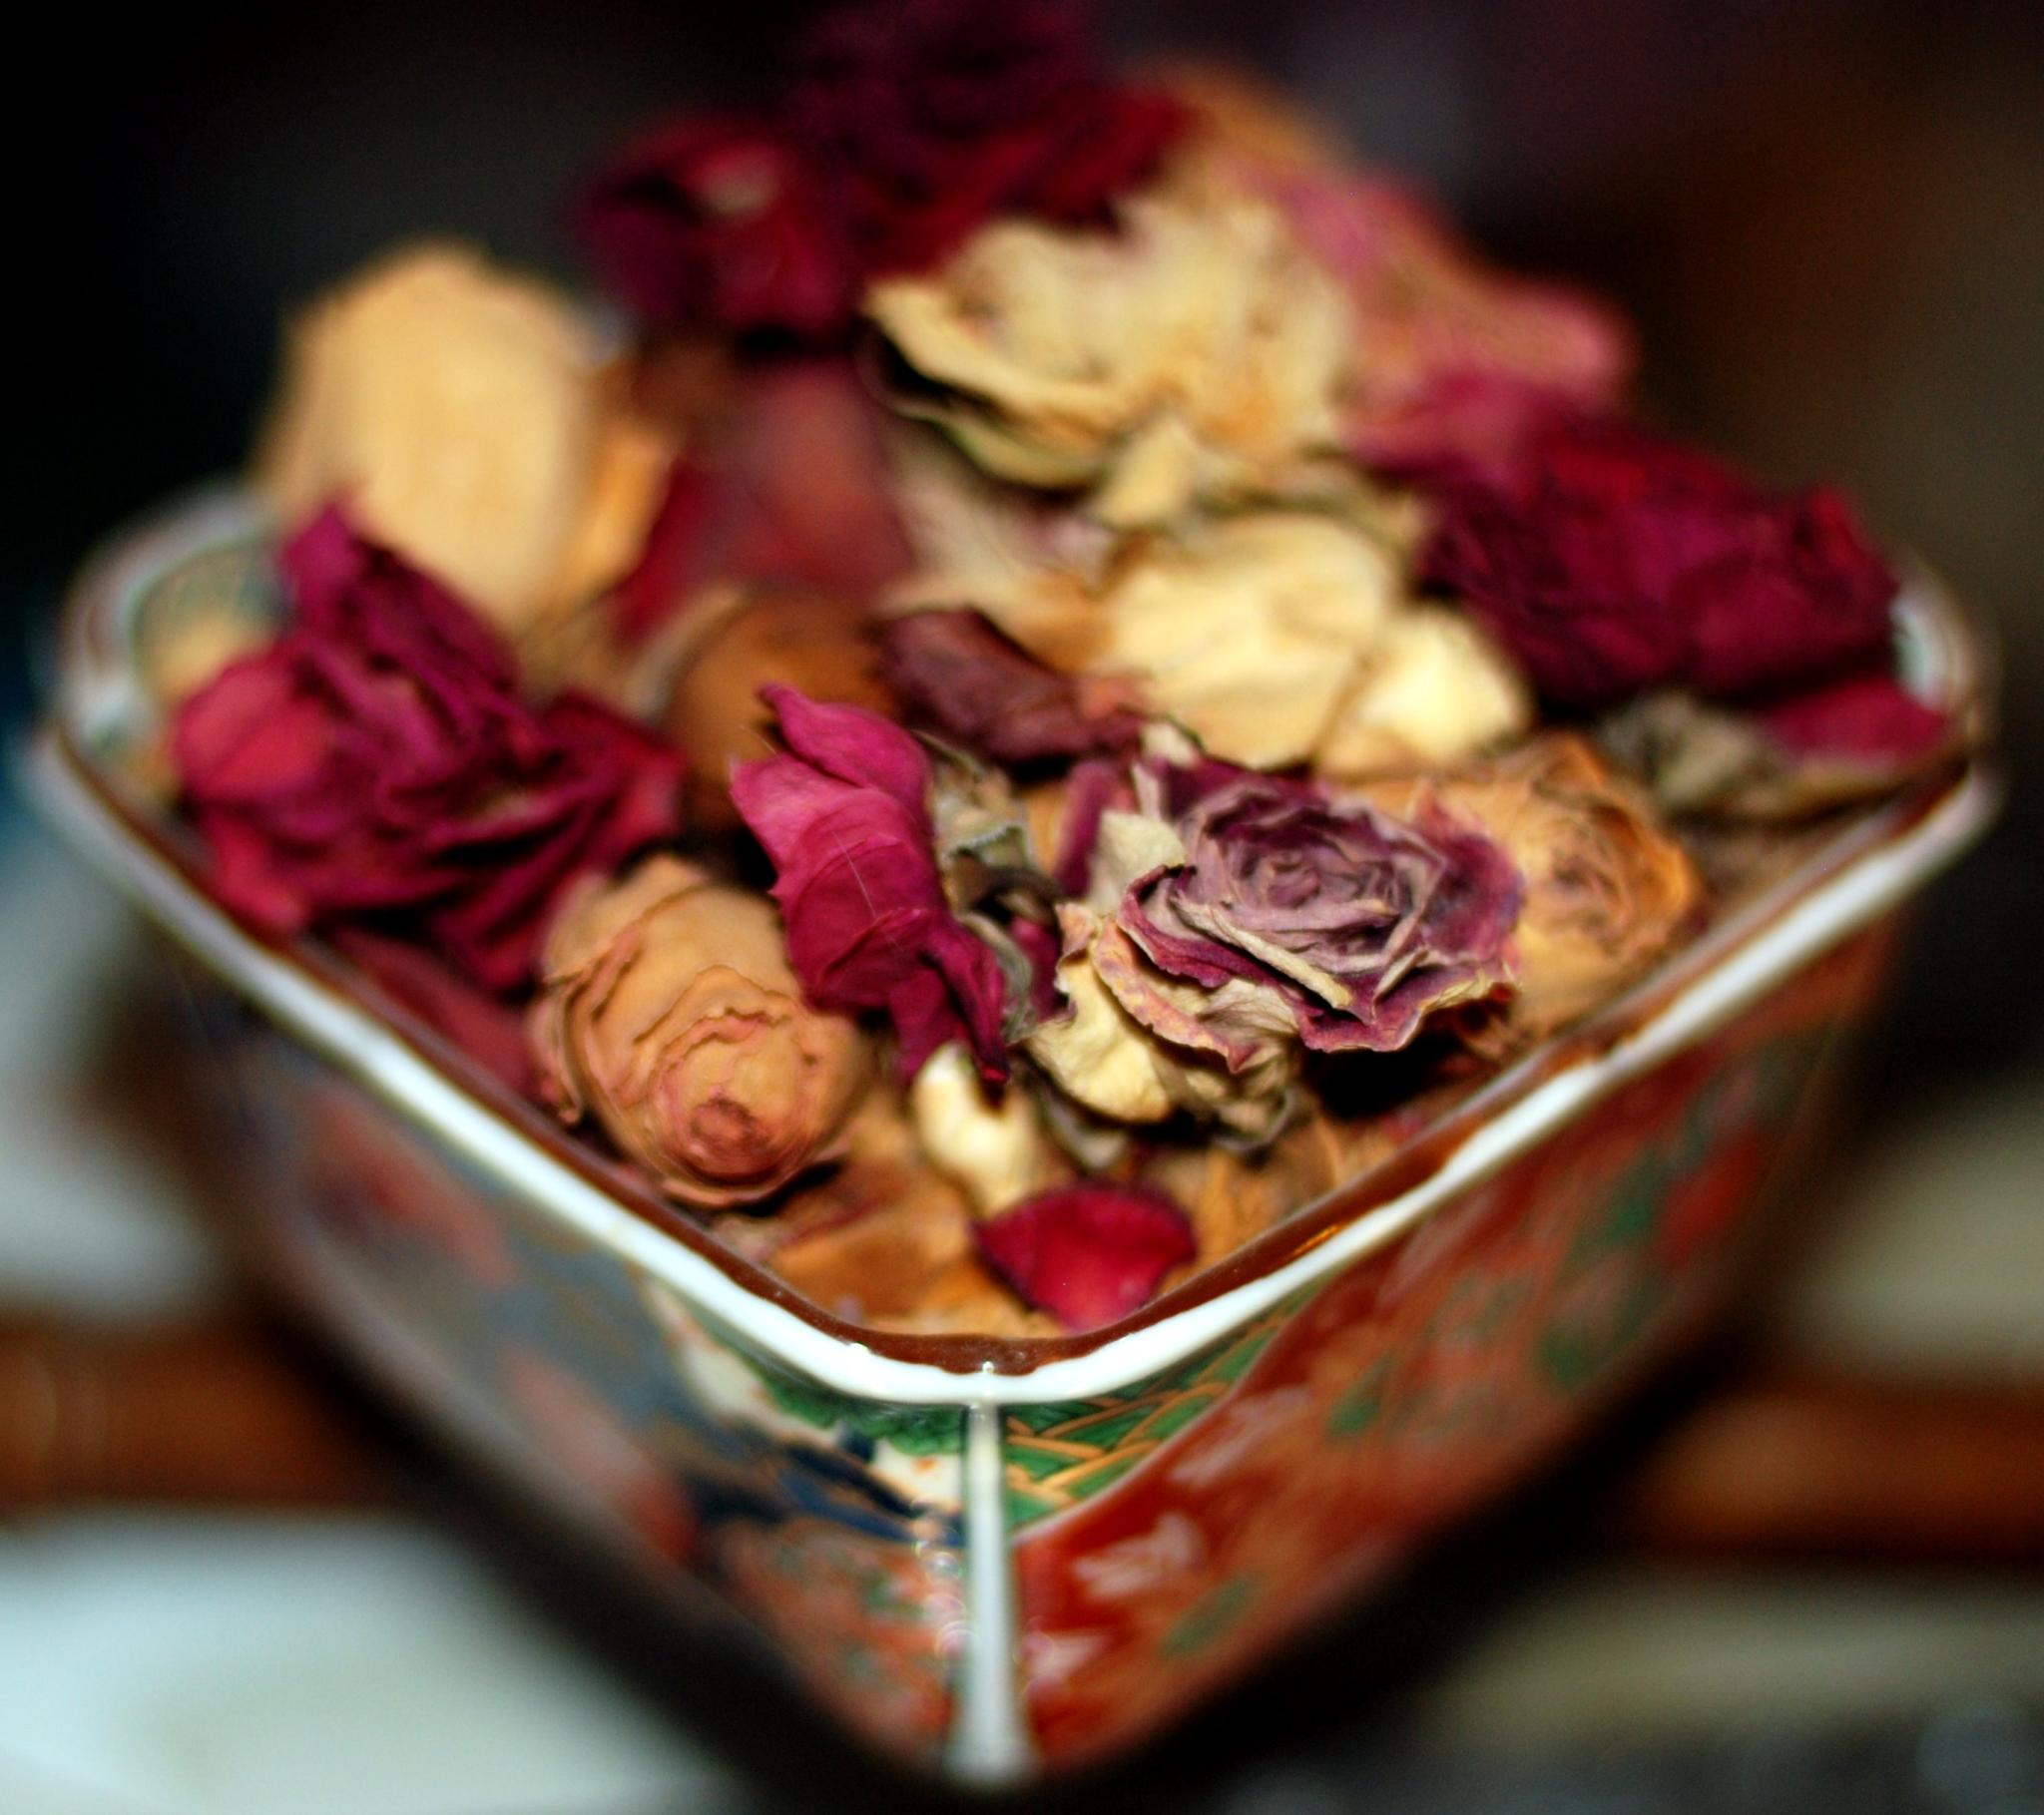 Make Rose Potpourri At Home My Decorative